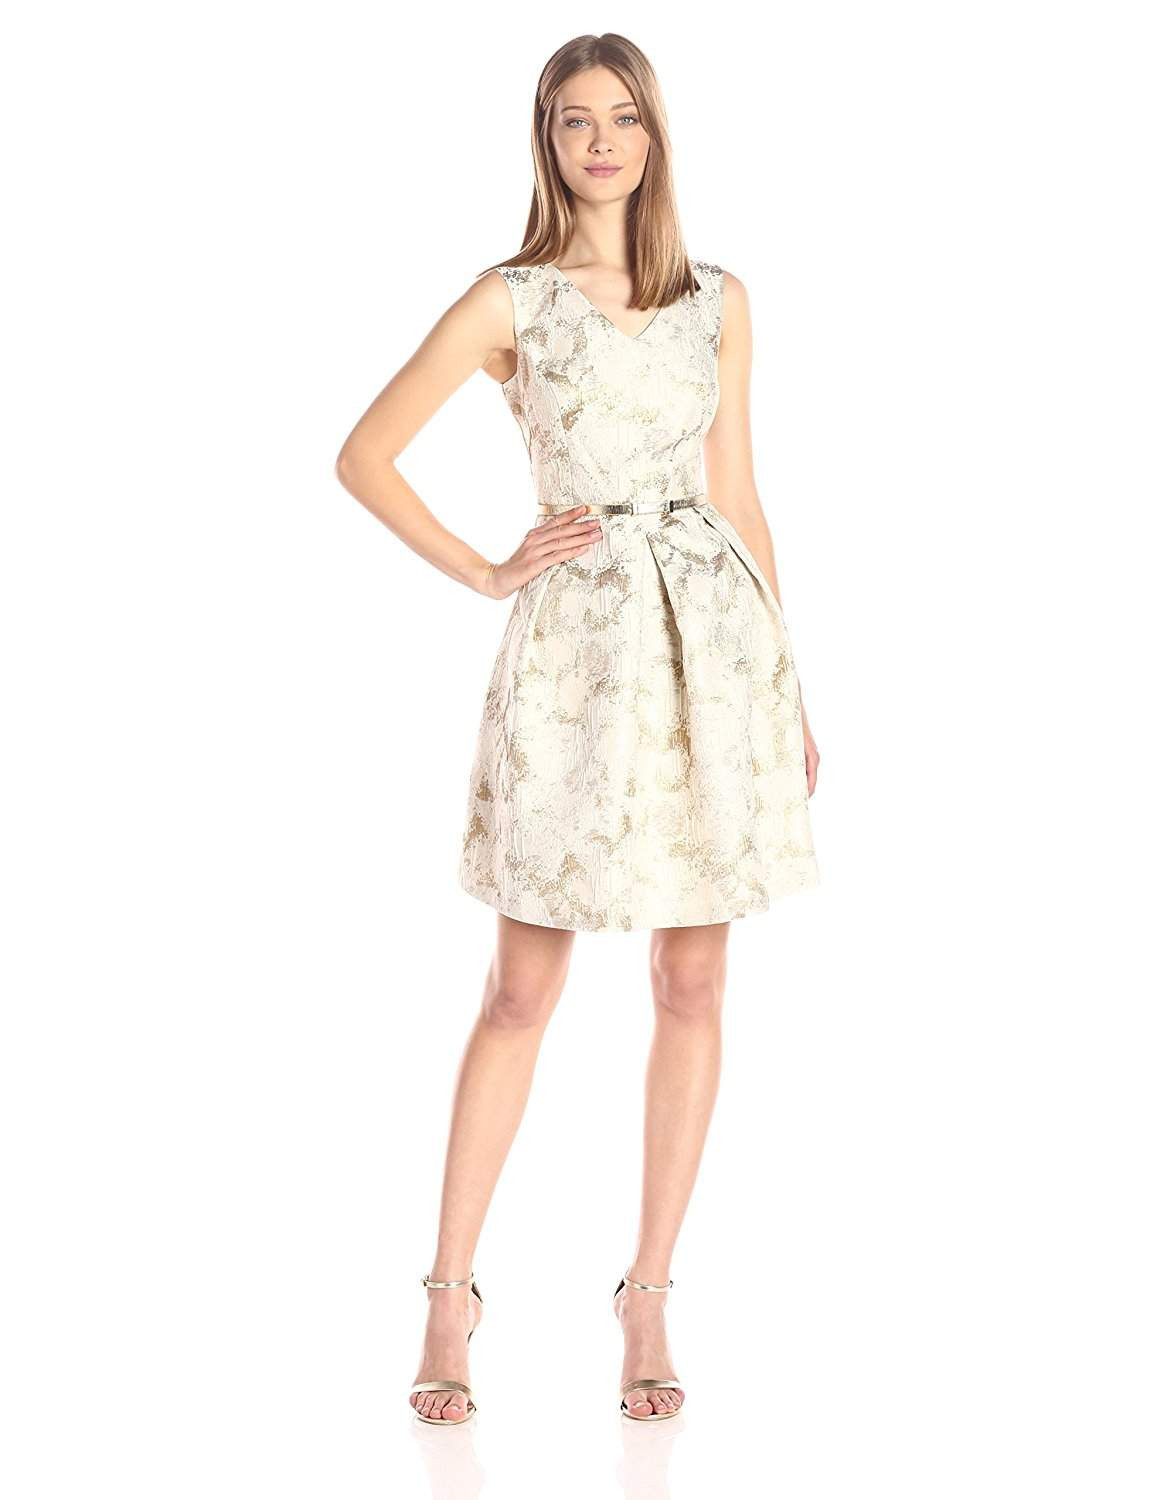 Wedding Rehearsal Dinner Attire  Top 10 Best Rehearsal Dinner Dresses